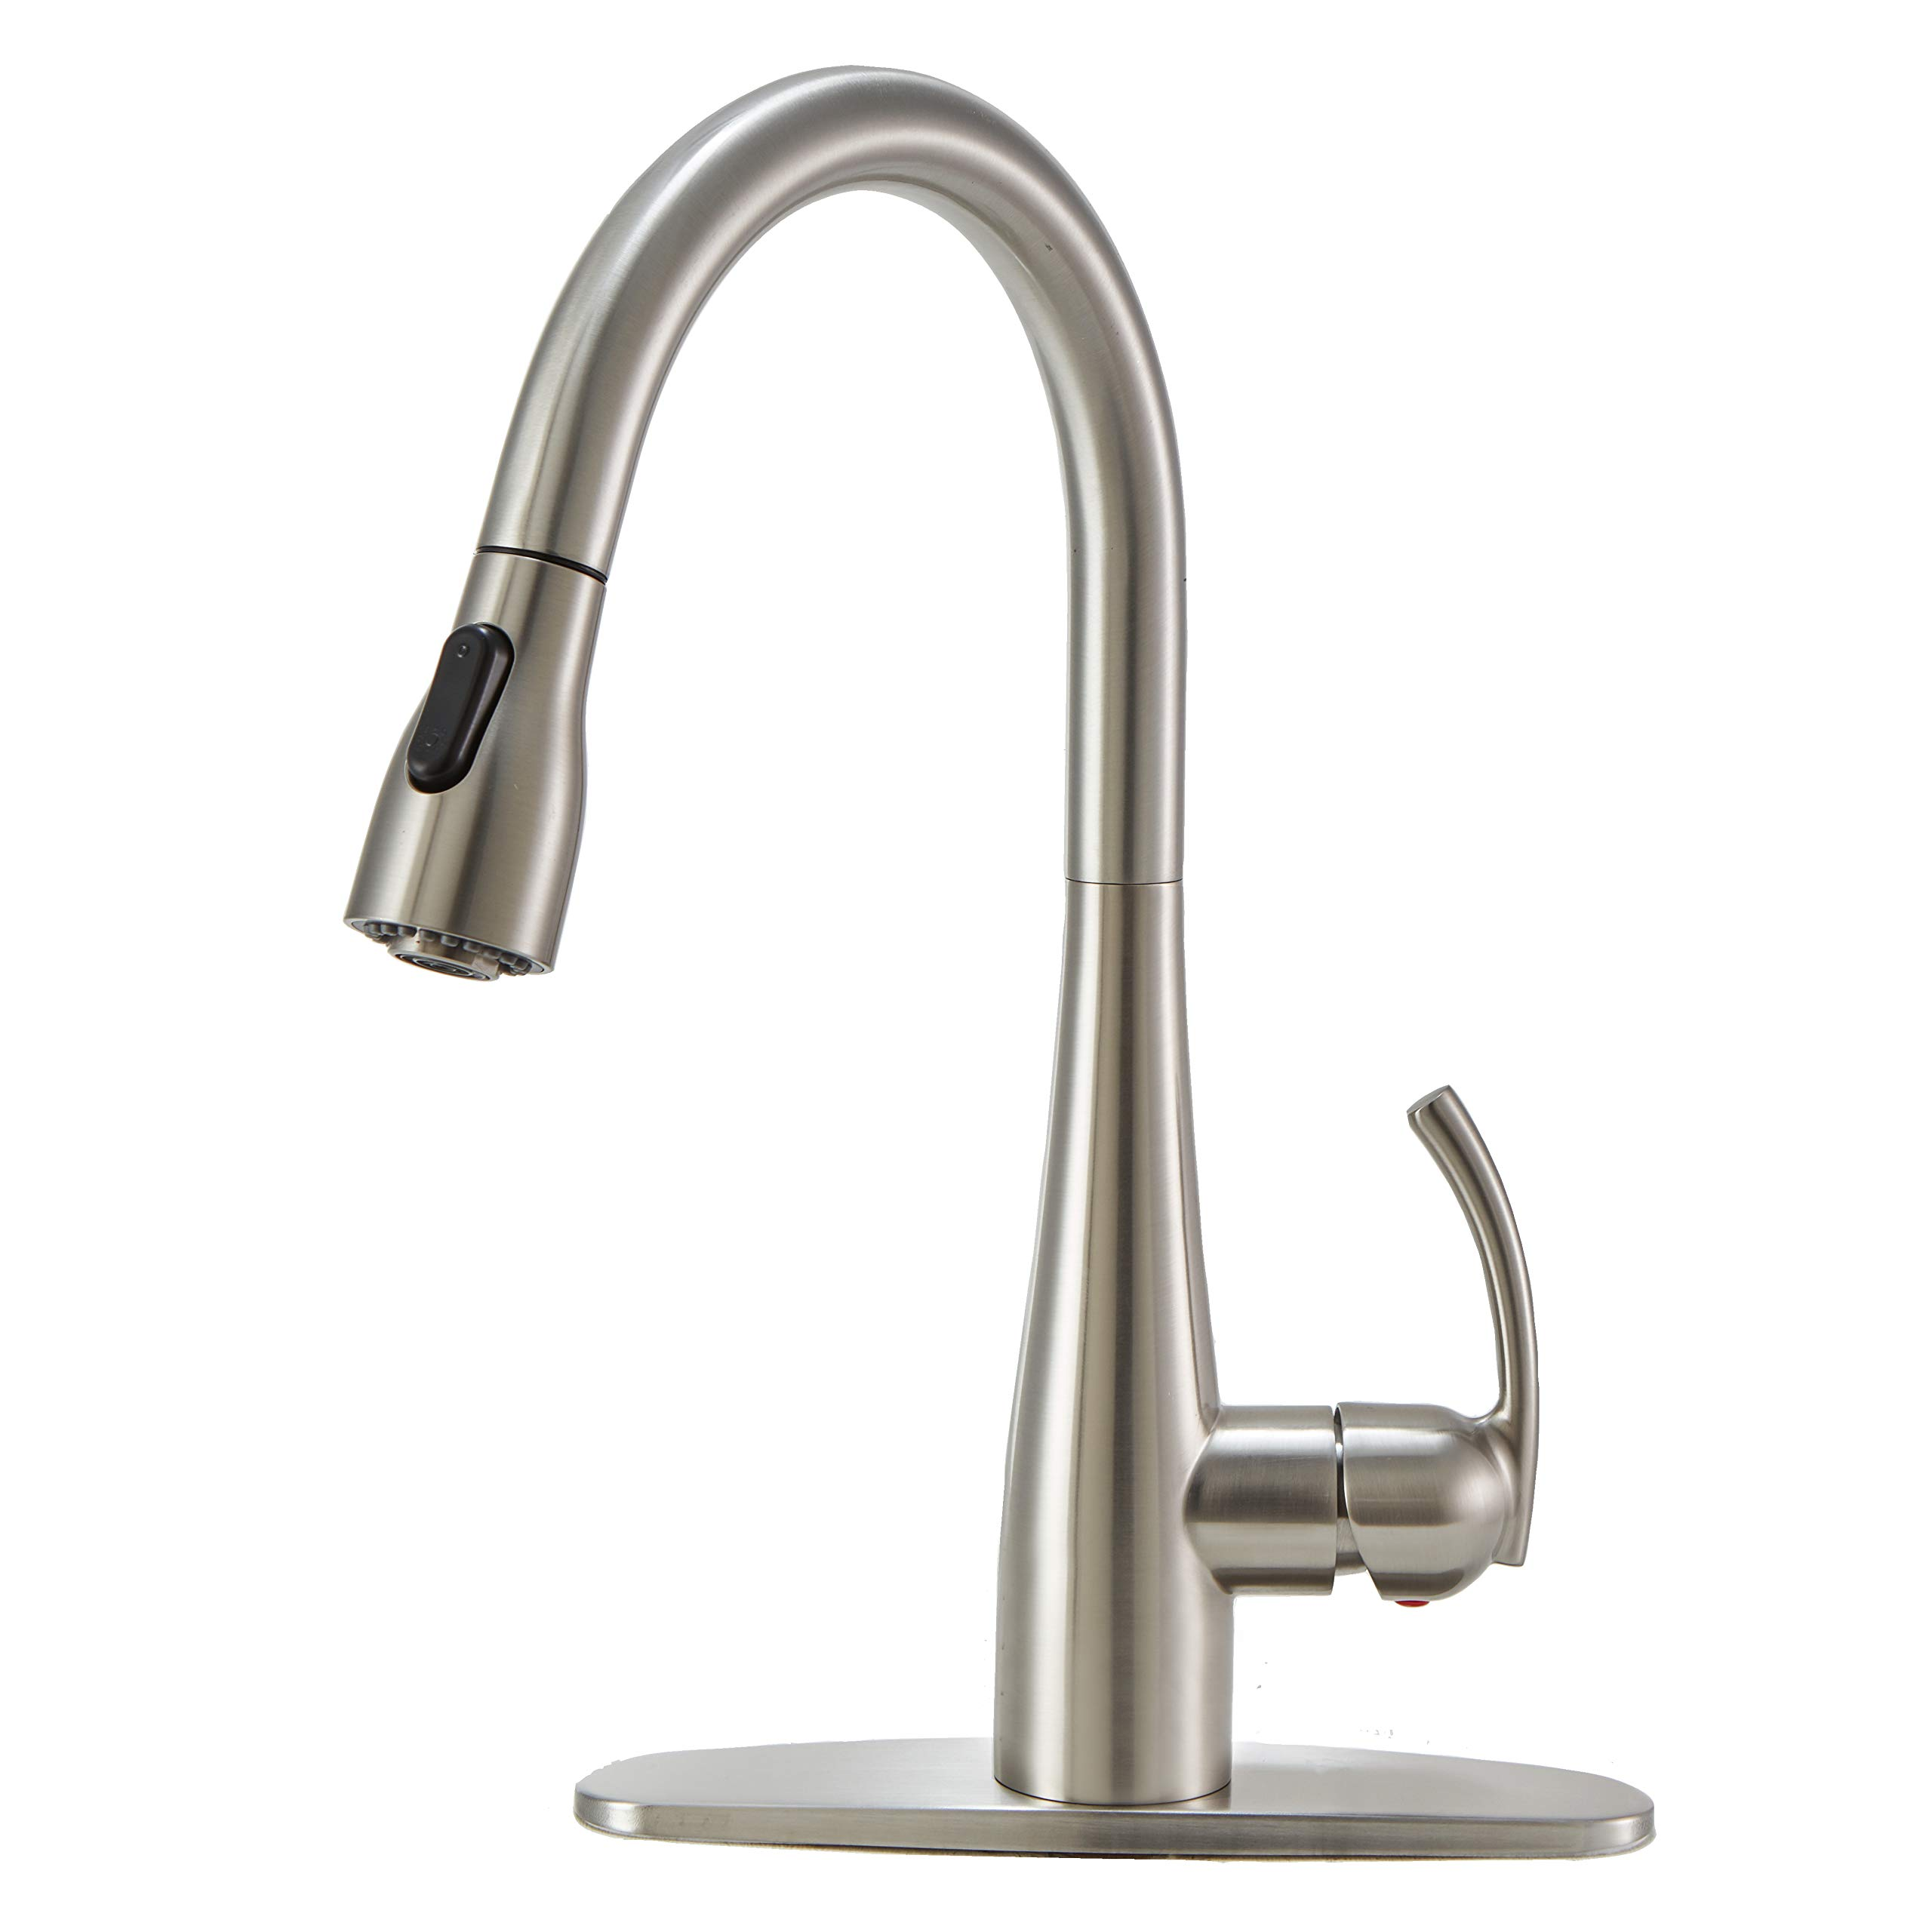 VCCUCINE Commercial High Arch 360 Swivel Single Handle Dual Function Pull Out Brushed Nickel Kitchen Faucet, Stainless Steel Kitchen Sink Faucets with Pull down Sprayer